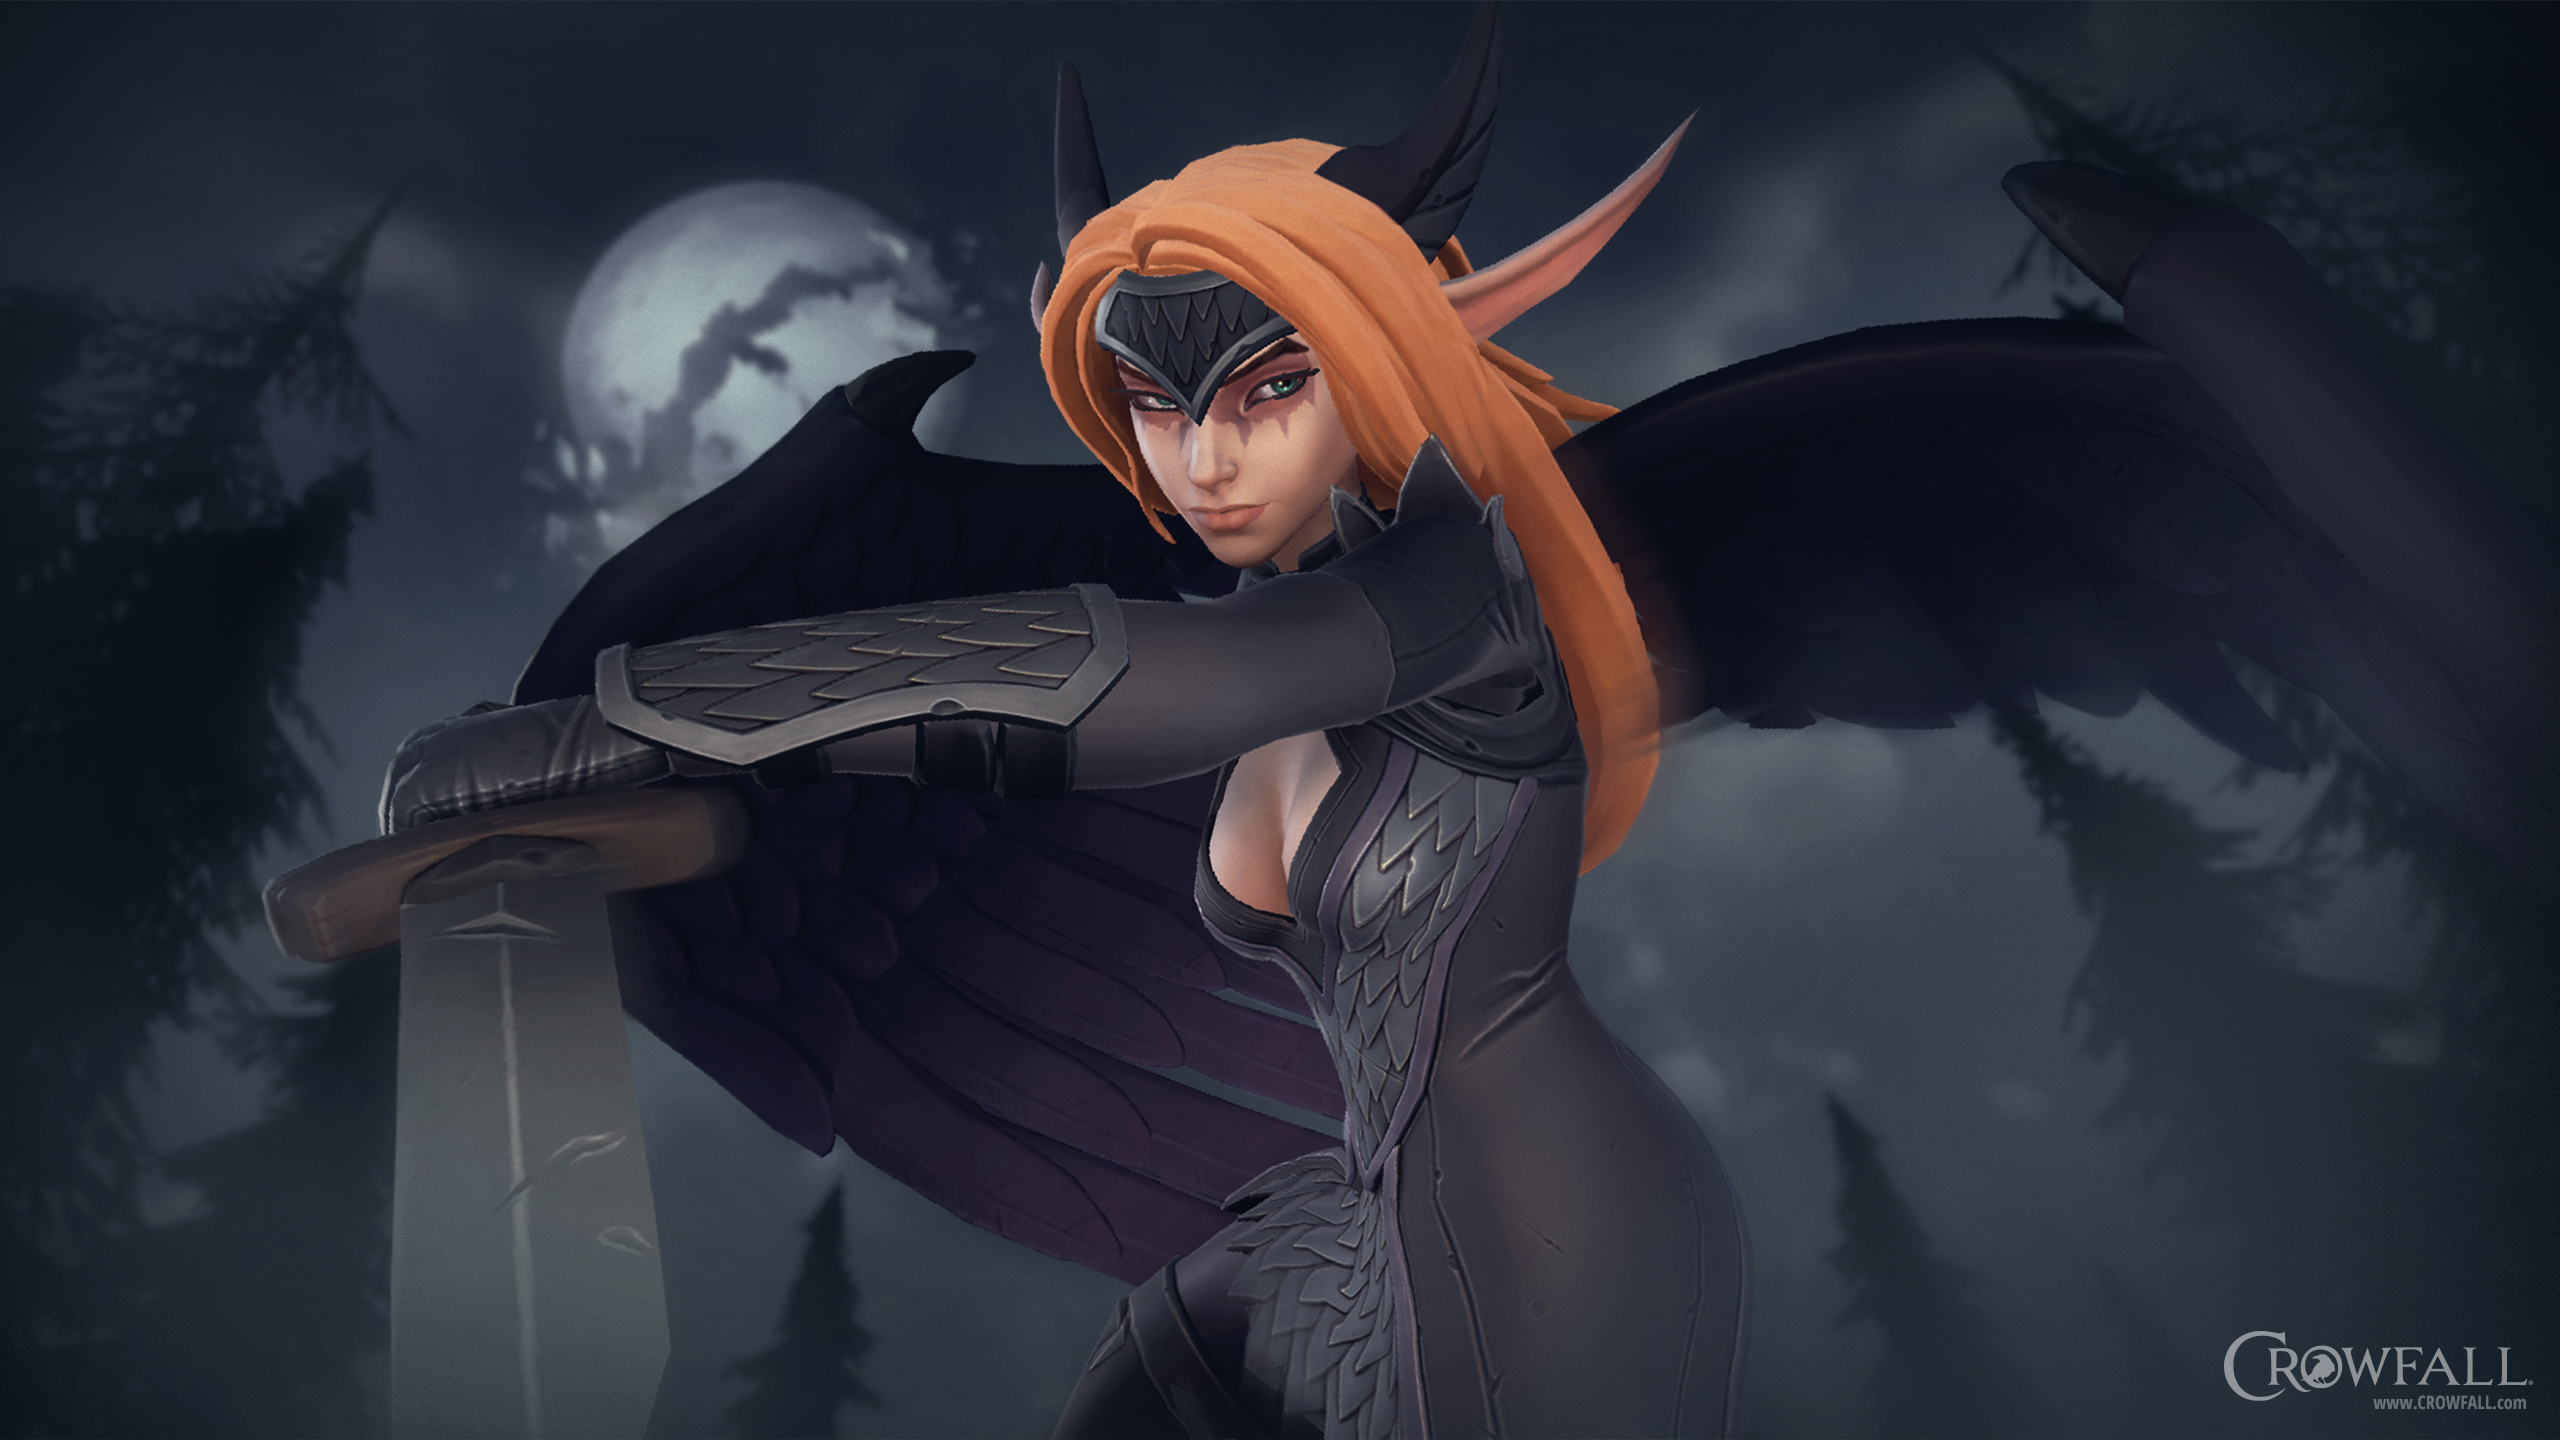 <T> Nightstalker - Crowfall wallpaper - 2560x1440